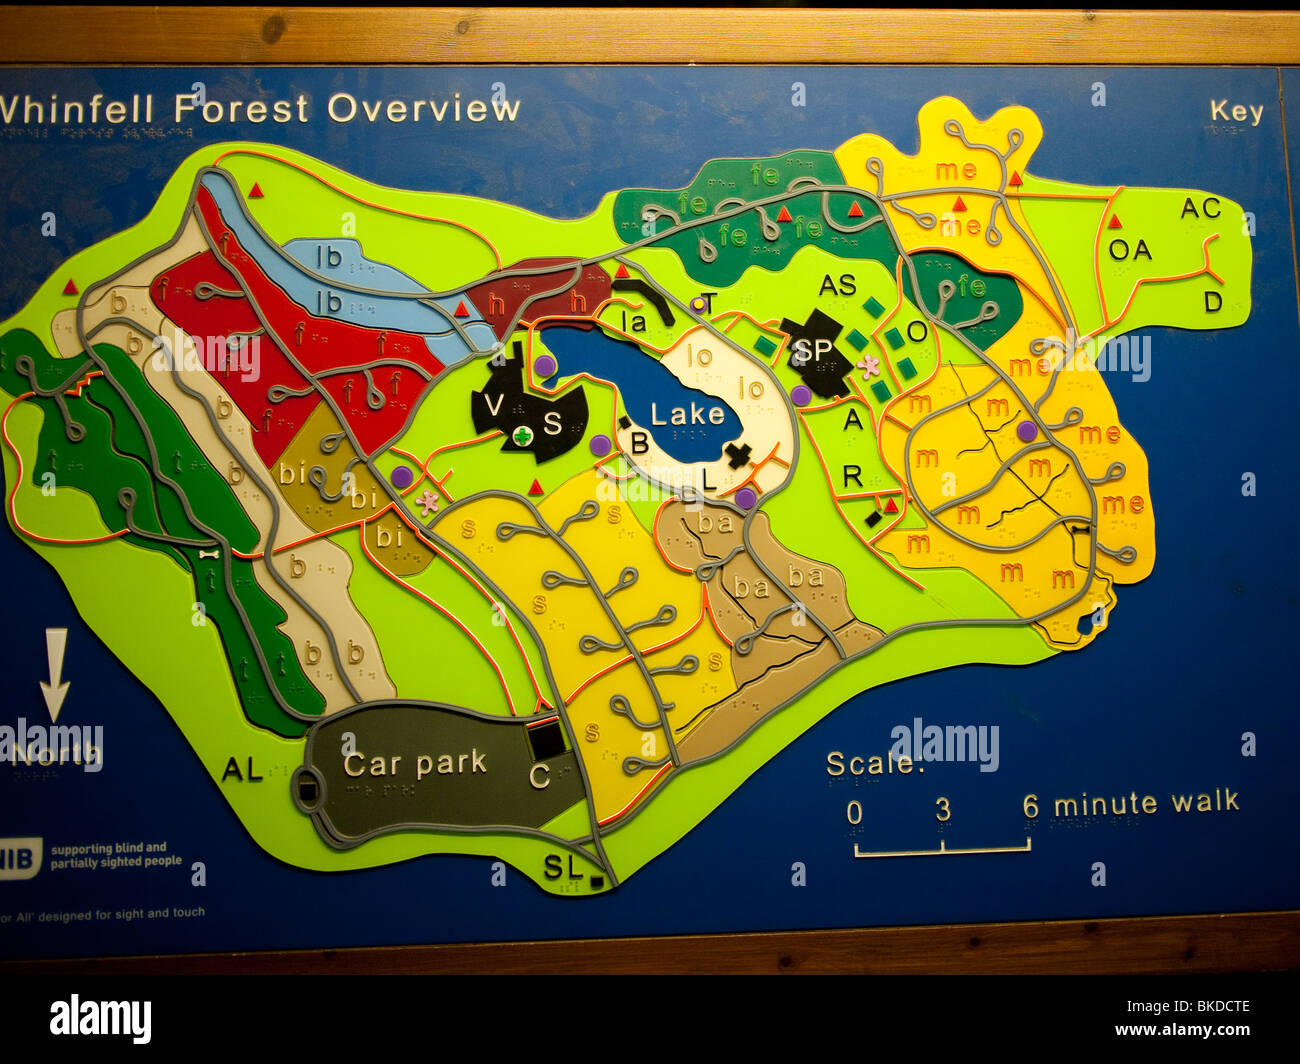 Centre Parcs Whinfell Map Centre Parcs Map, Lake Distric, UK Stock Photo: 29184302   Alamy